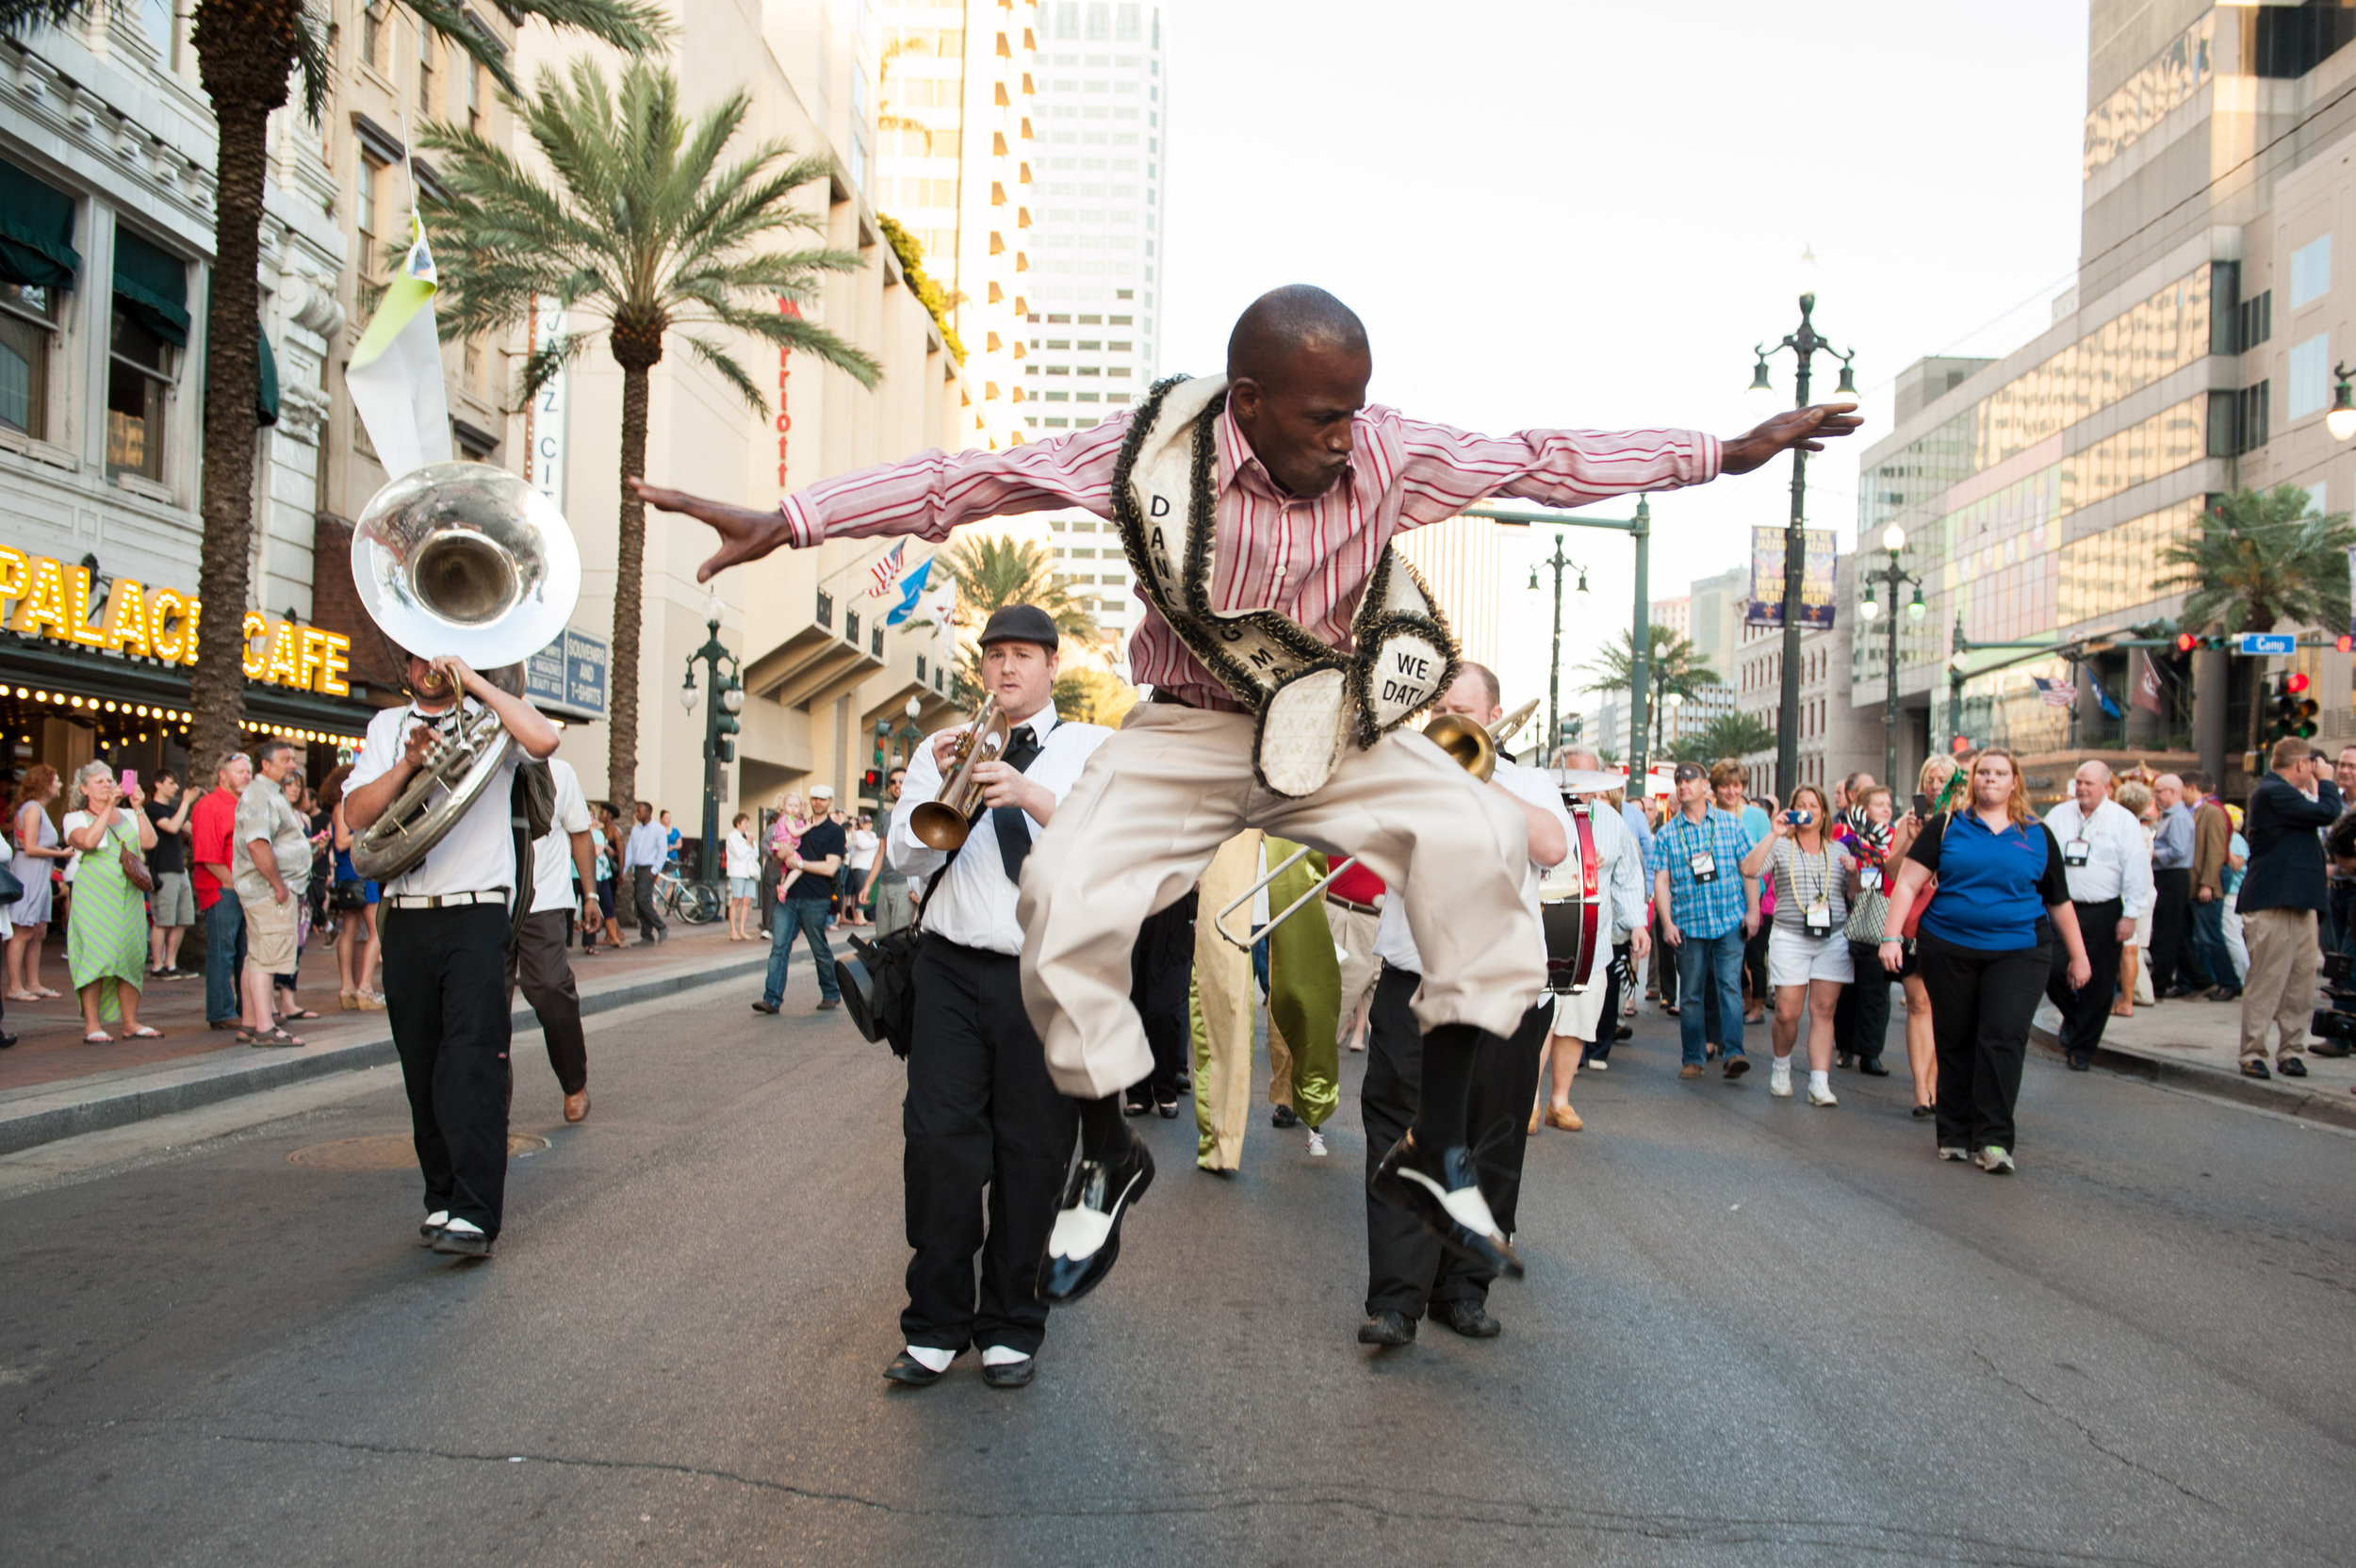 Second Line Corporate Event in New Orleans by Adrienne Battistella